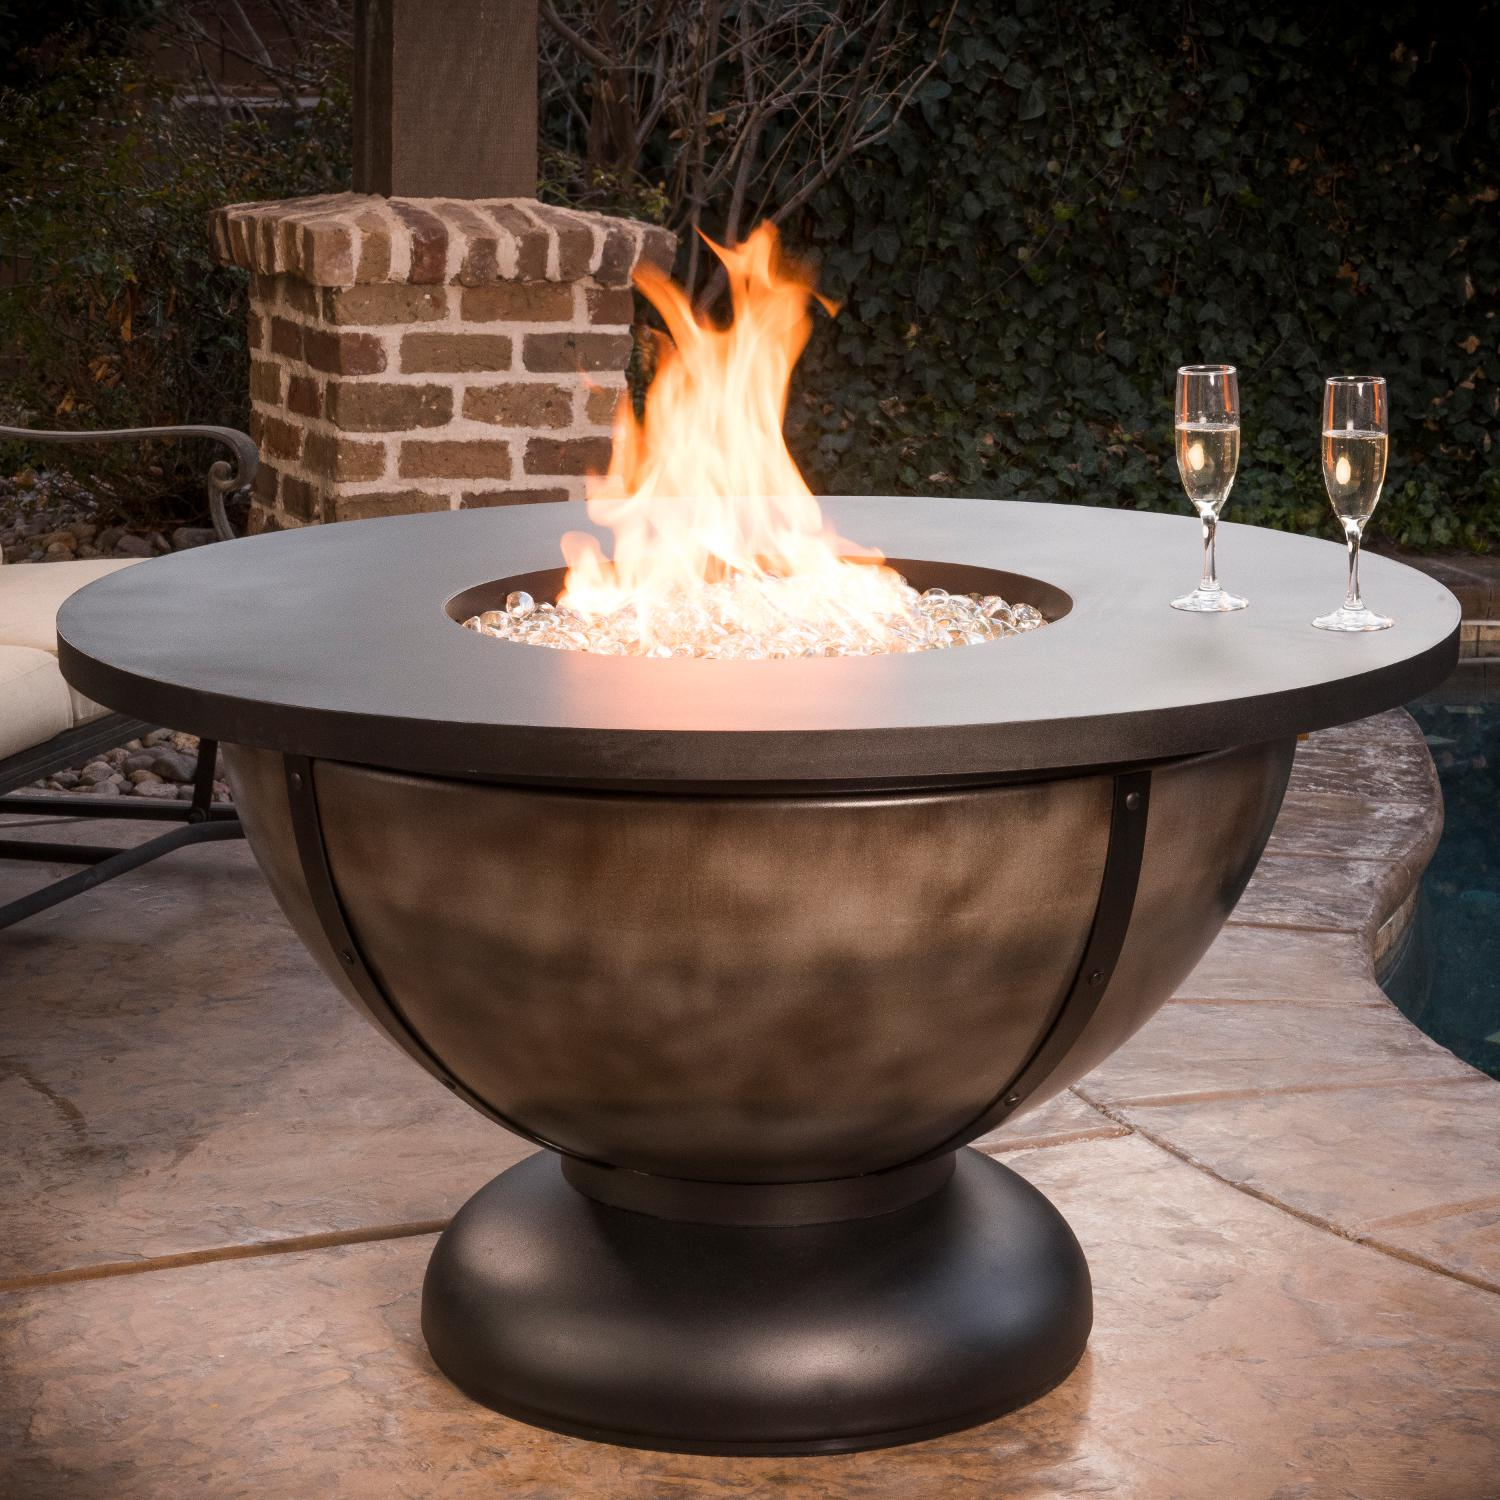 Cc Products Onyx Bowl 48 Inch Round Natural Gas Fire Table Onyx Finish C1045 Bbq Guys Fire Table Fire Pit Table Fire Pit Bowl